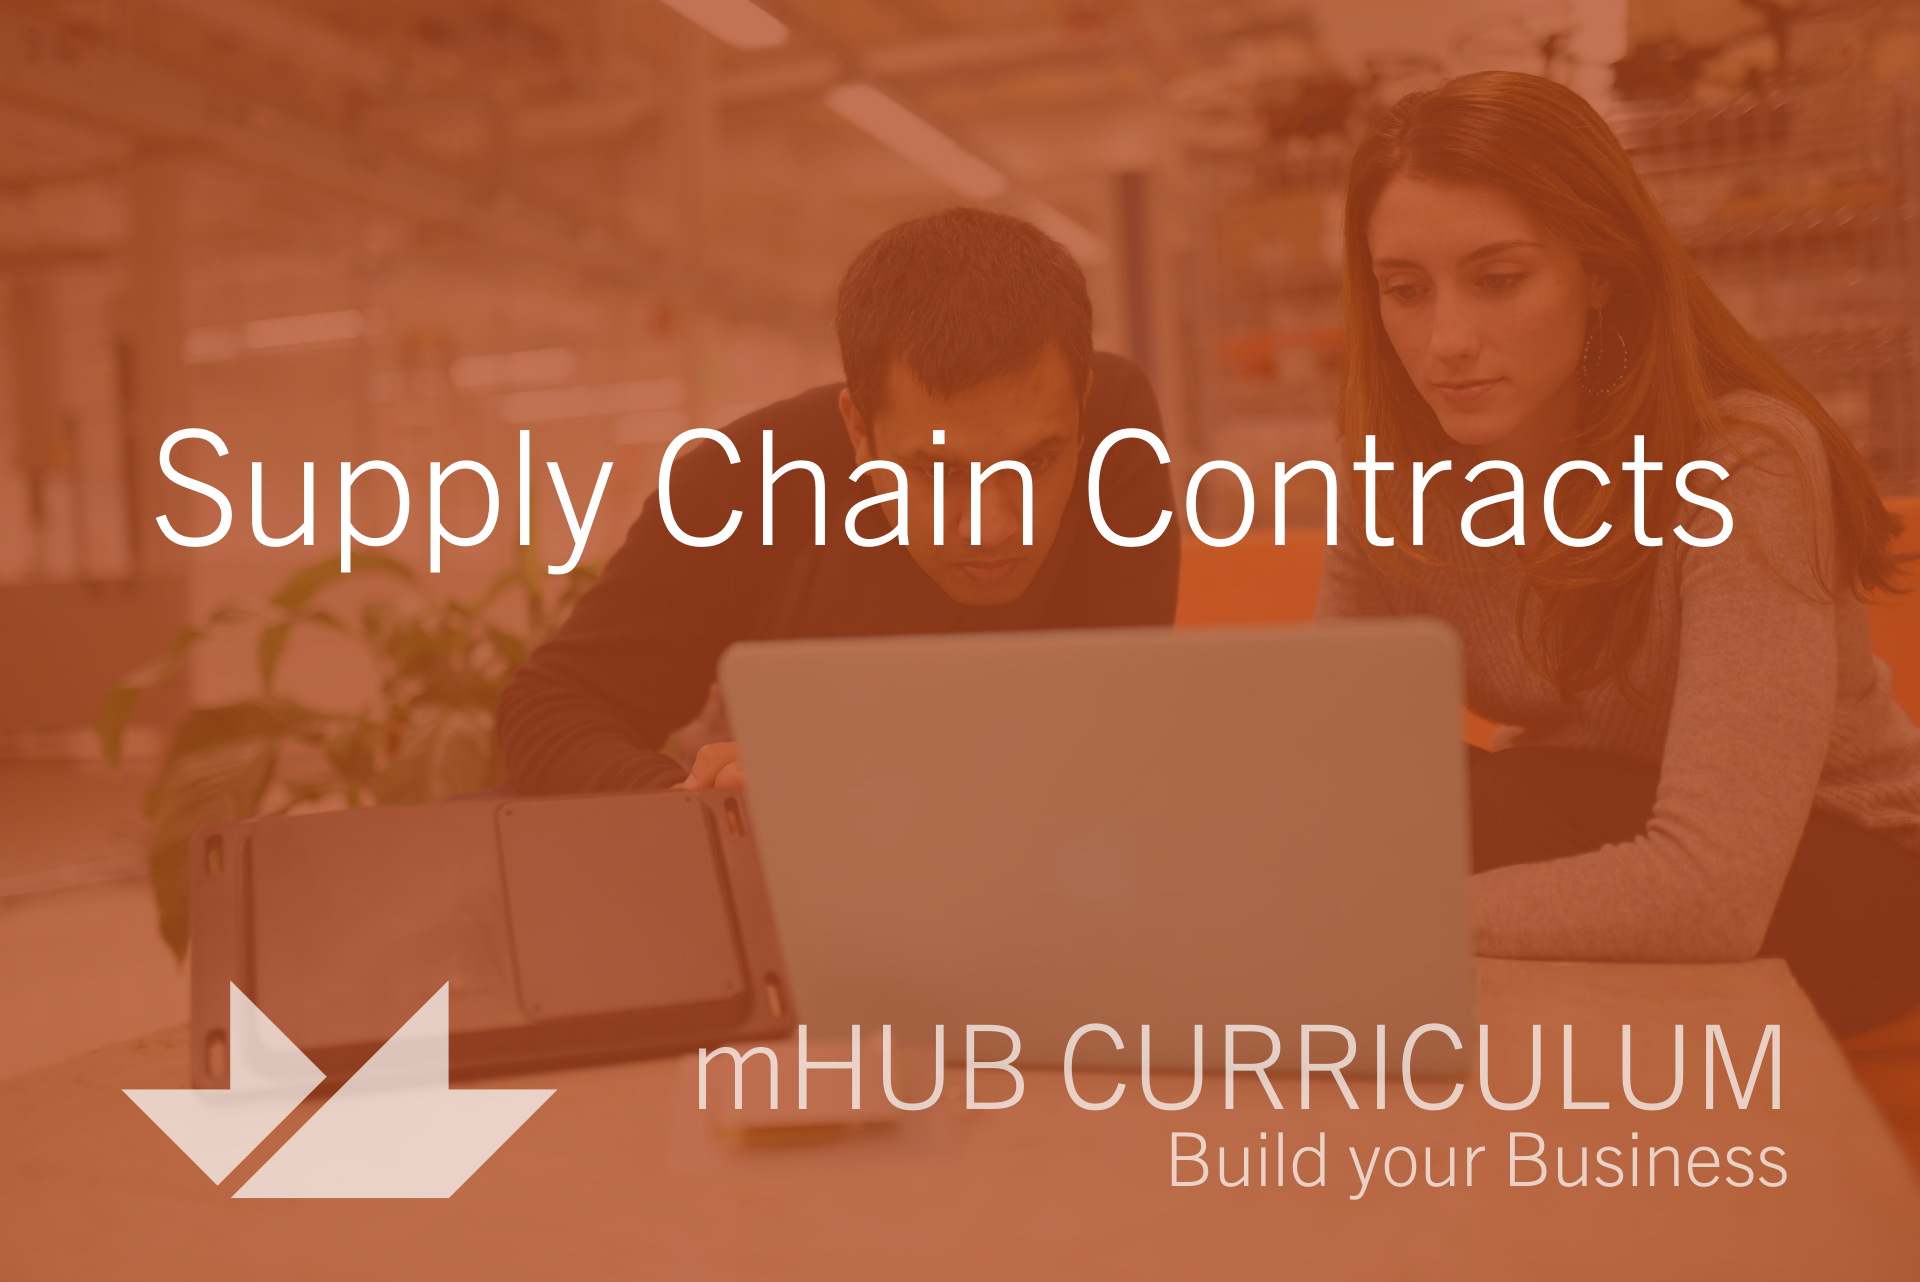 Supply Chain Contracts